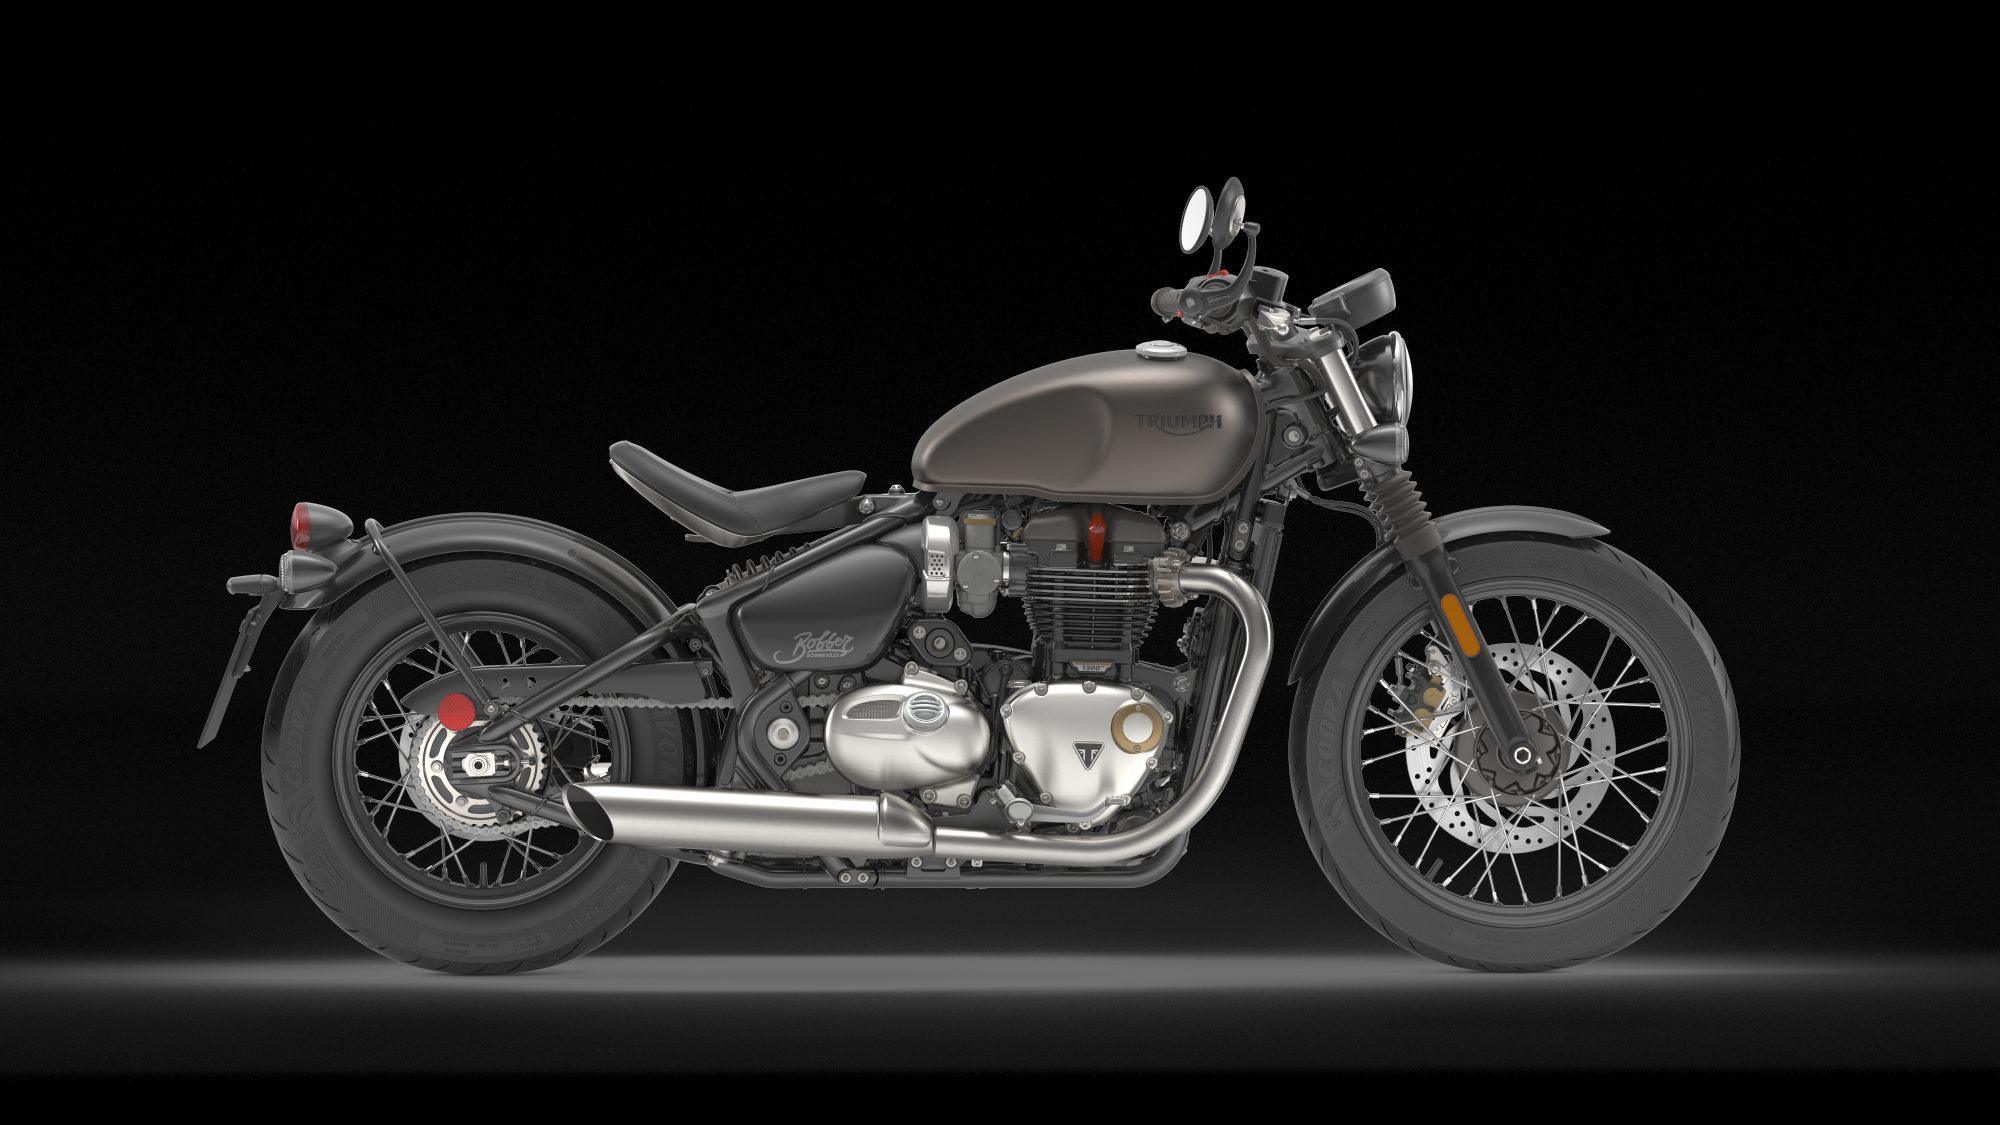 triumph bonneville bobber 2017 motorrad fotos motorrad bilder. Black Bedroom Furniture Sets. Home Design Ideas